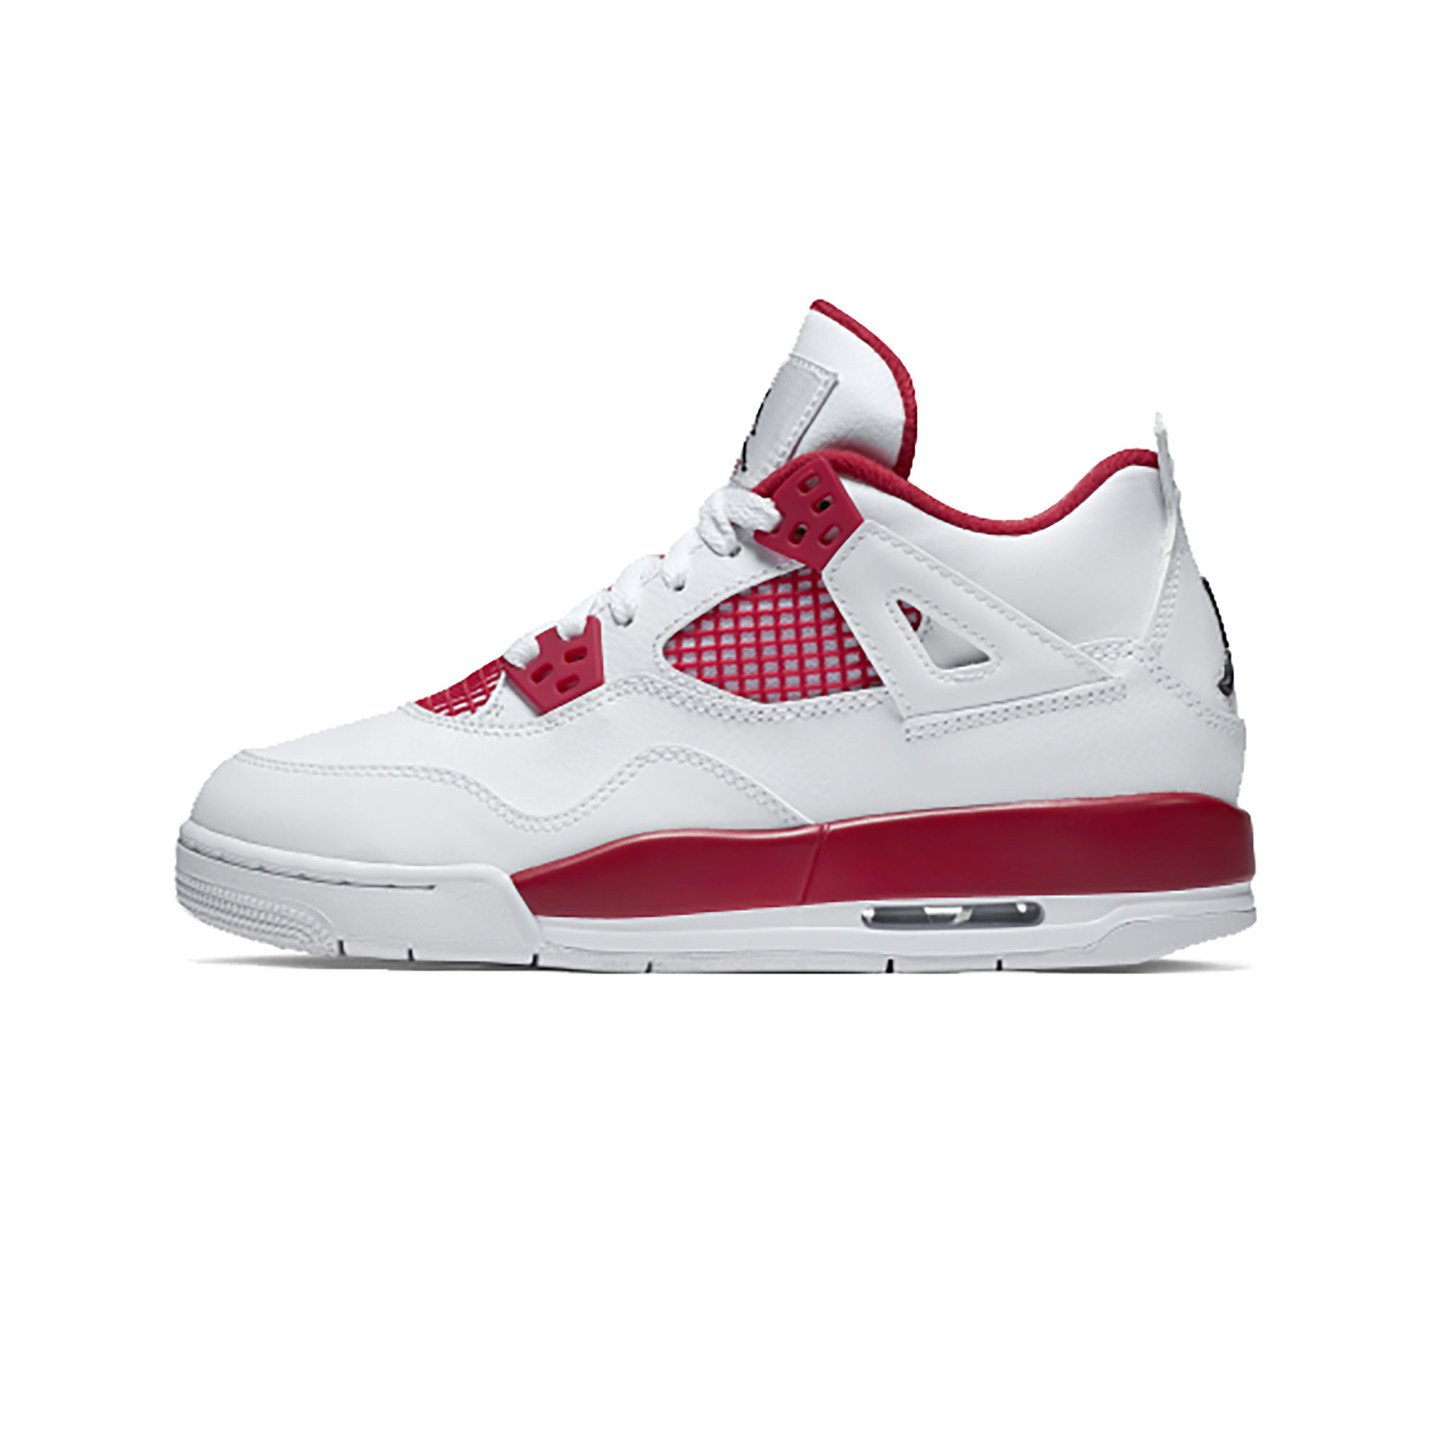 Jordan Air Jordan 4 Retro GS Alternate White / Gym Red / Black 408452-106-36.5